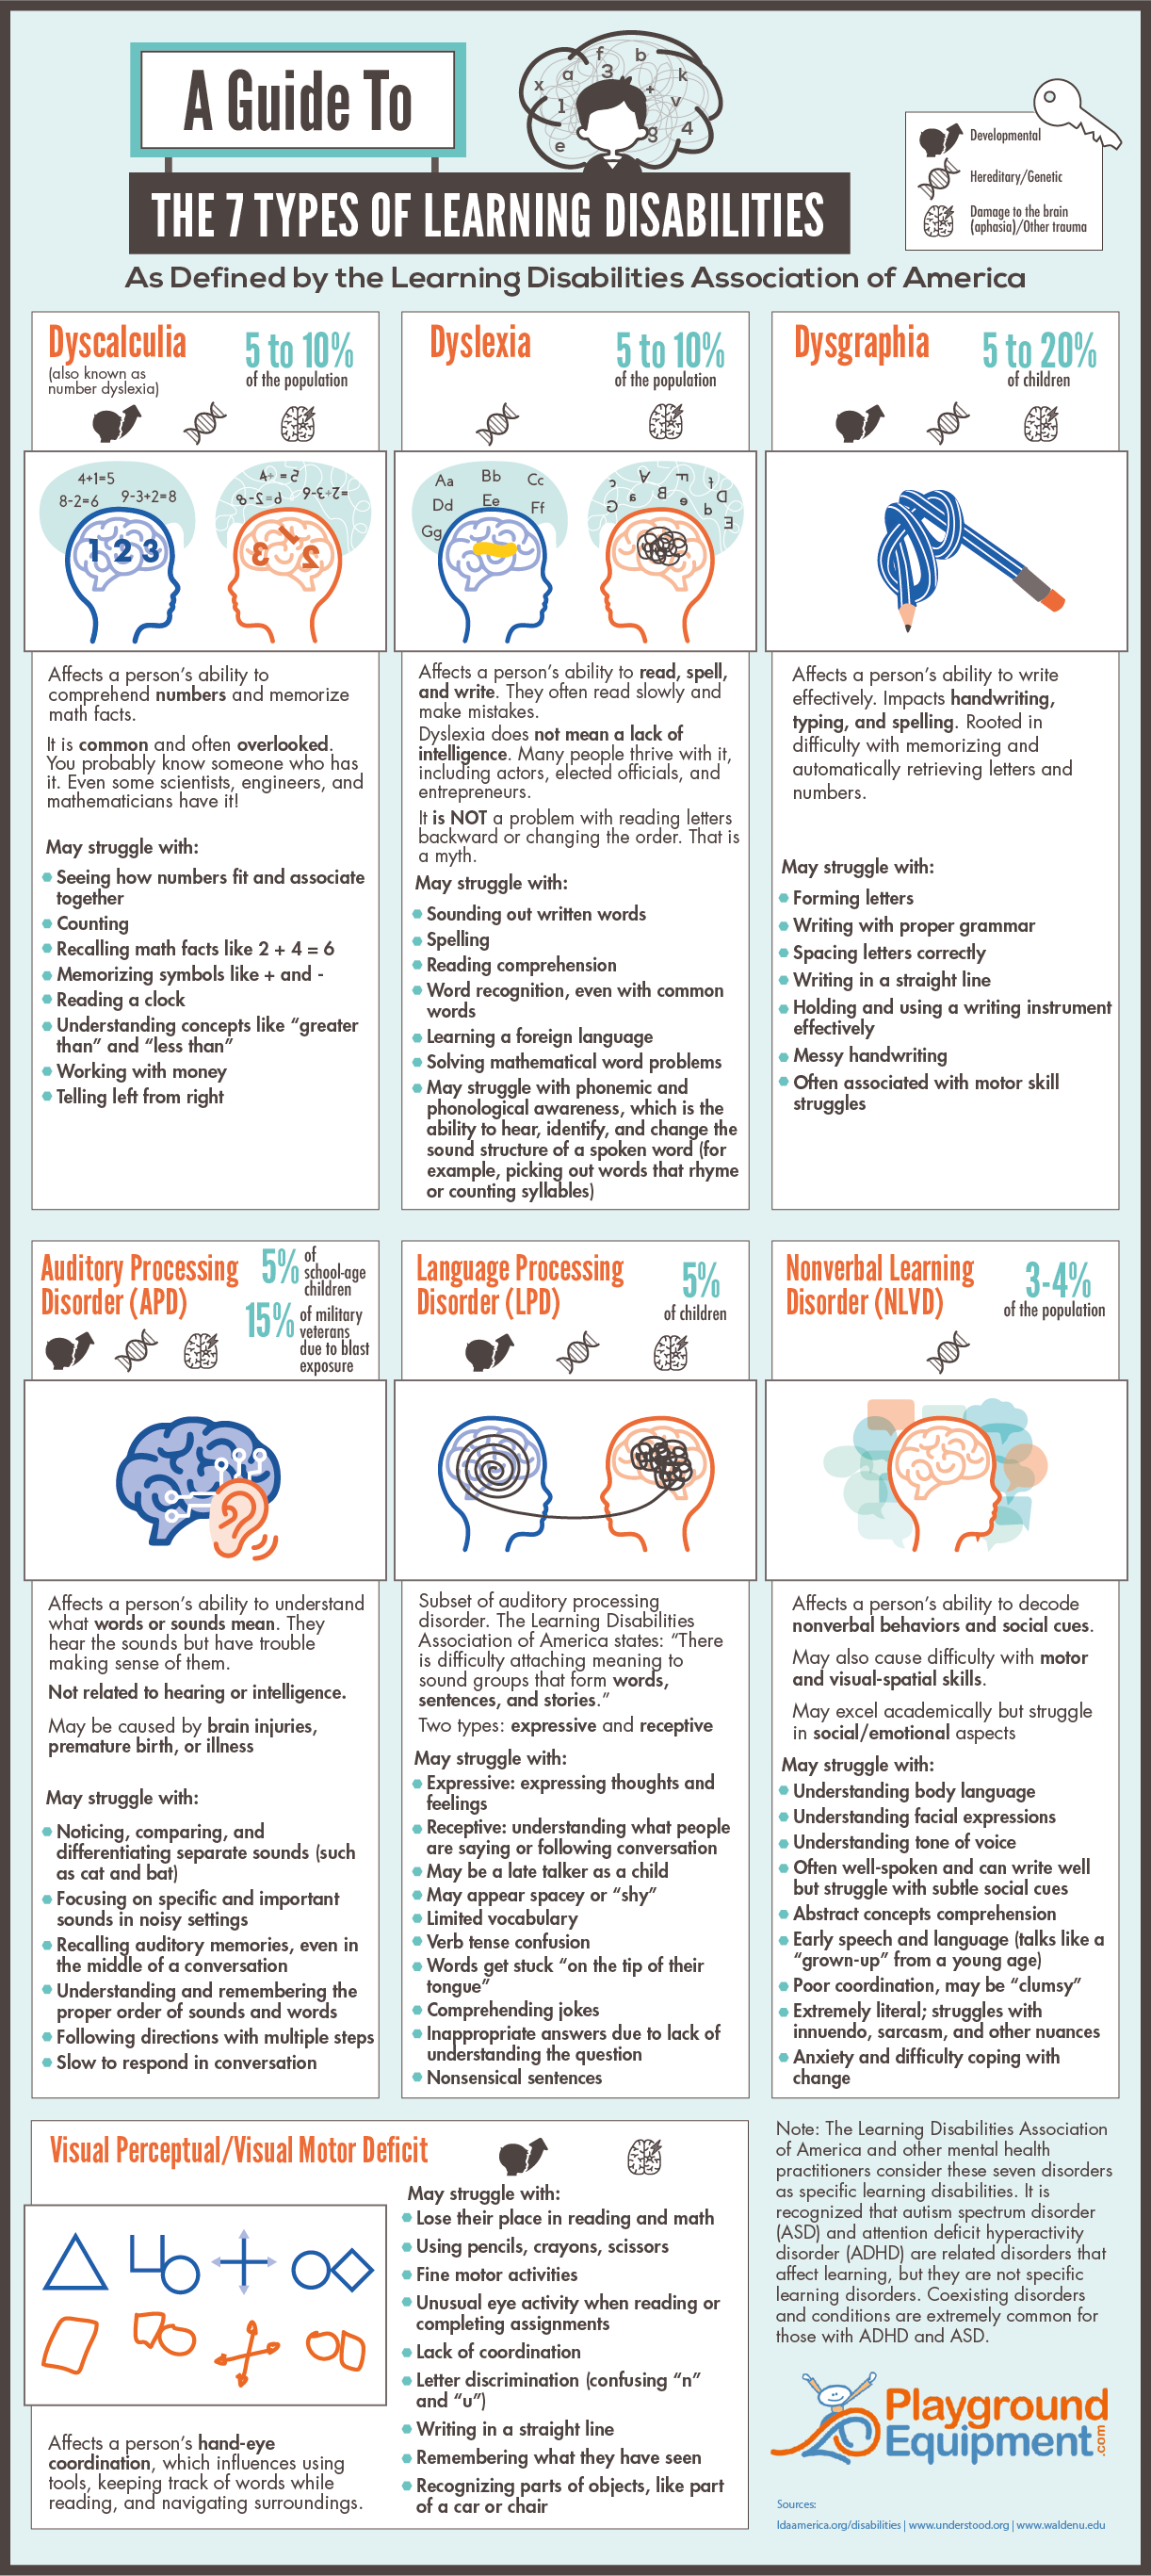 A Guide To the 7 Types of Learning Disabilities - PlaygroundEquipment.com - Infographic